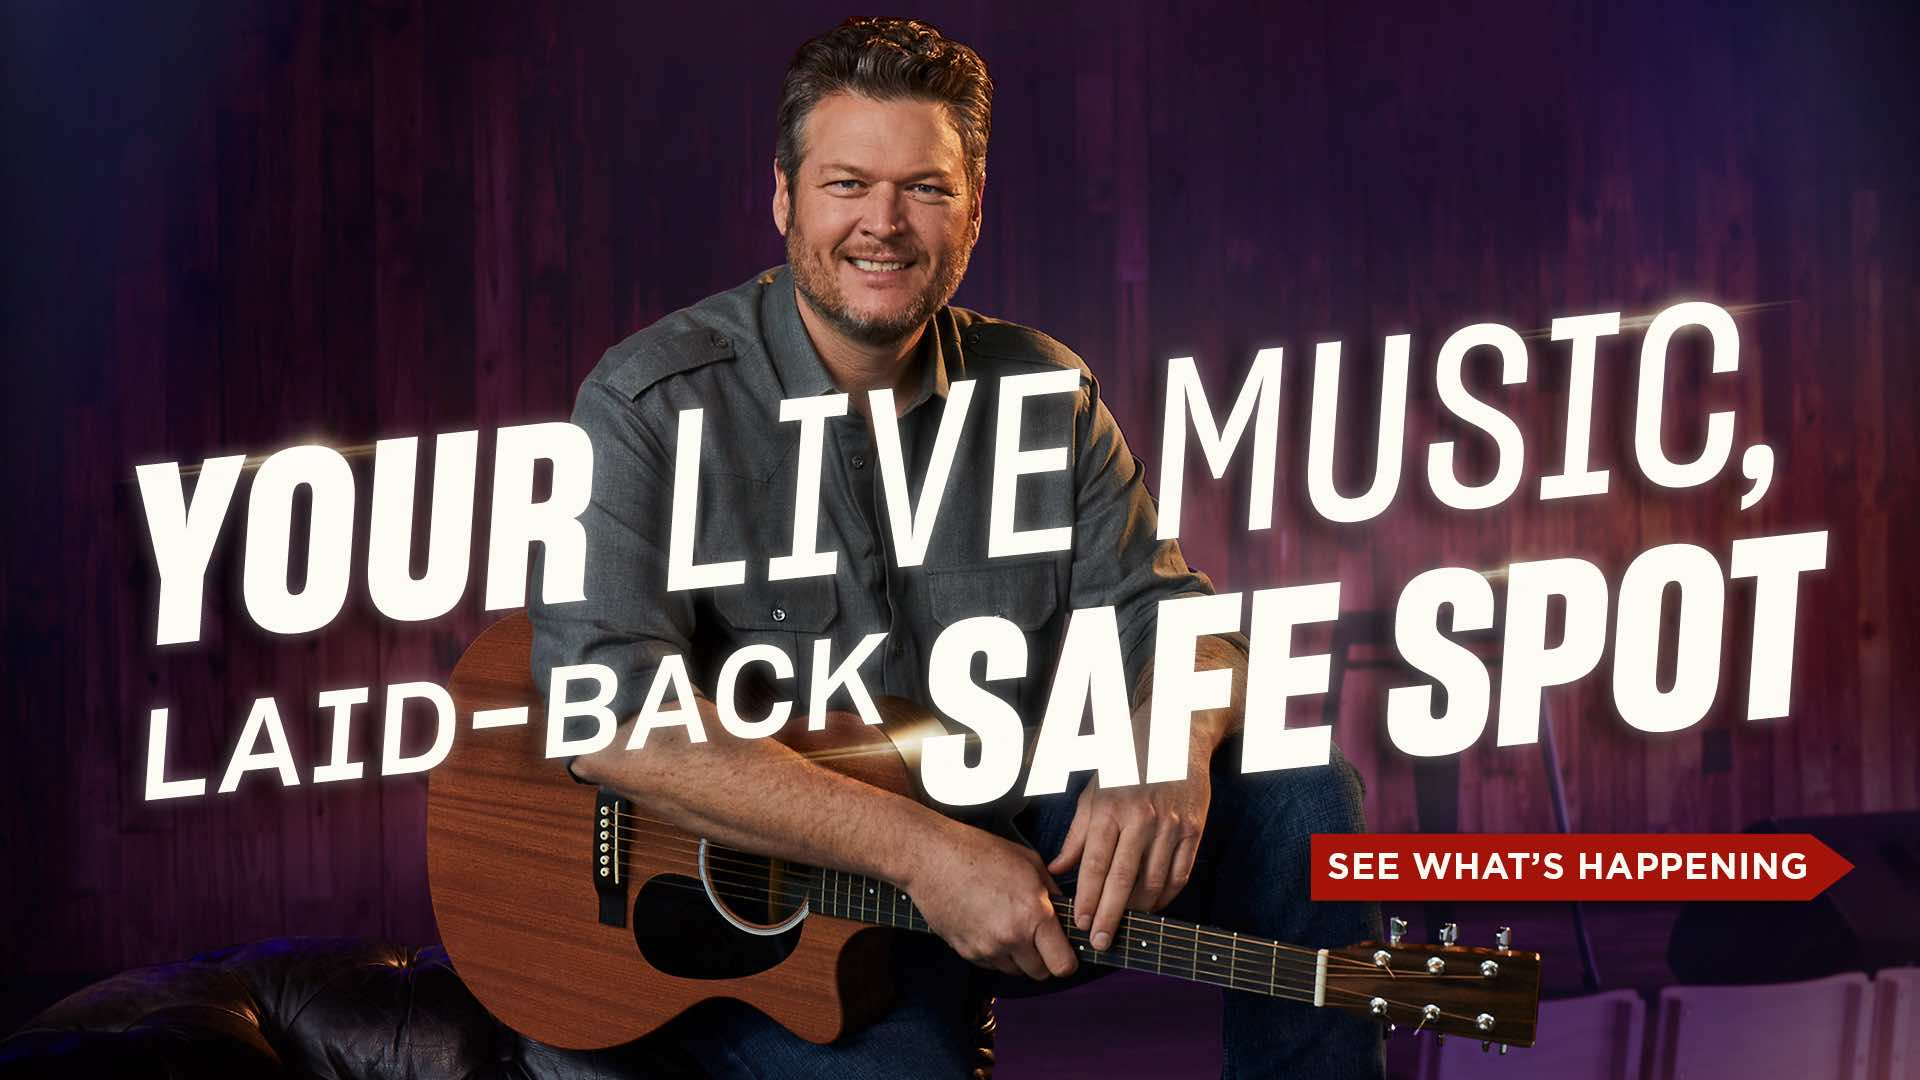 You Live Music, Laid-Back Safe Spot - Click to See What's Happening